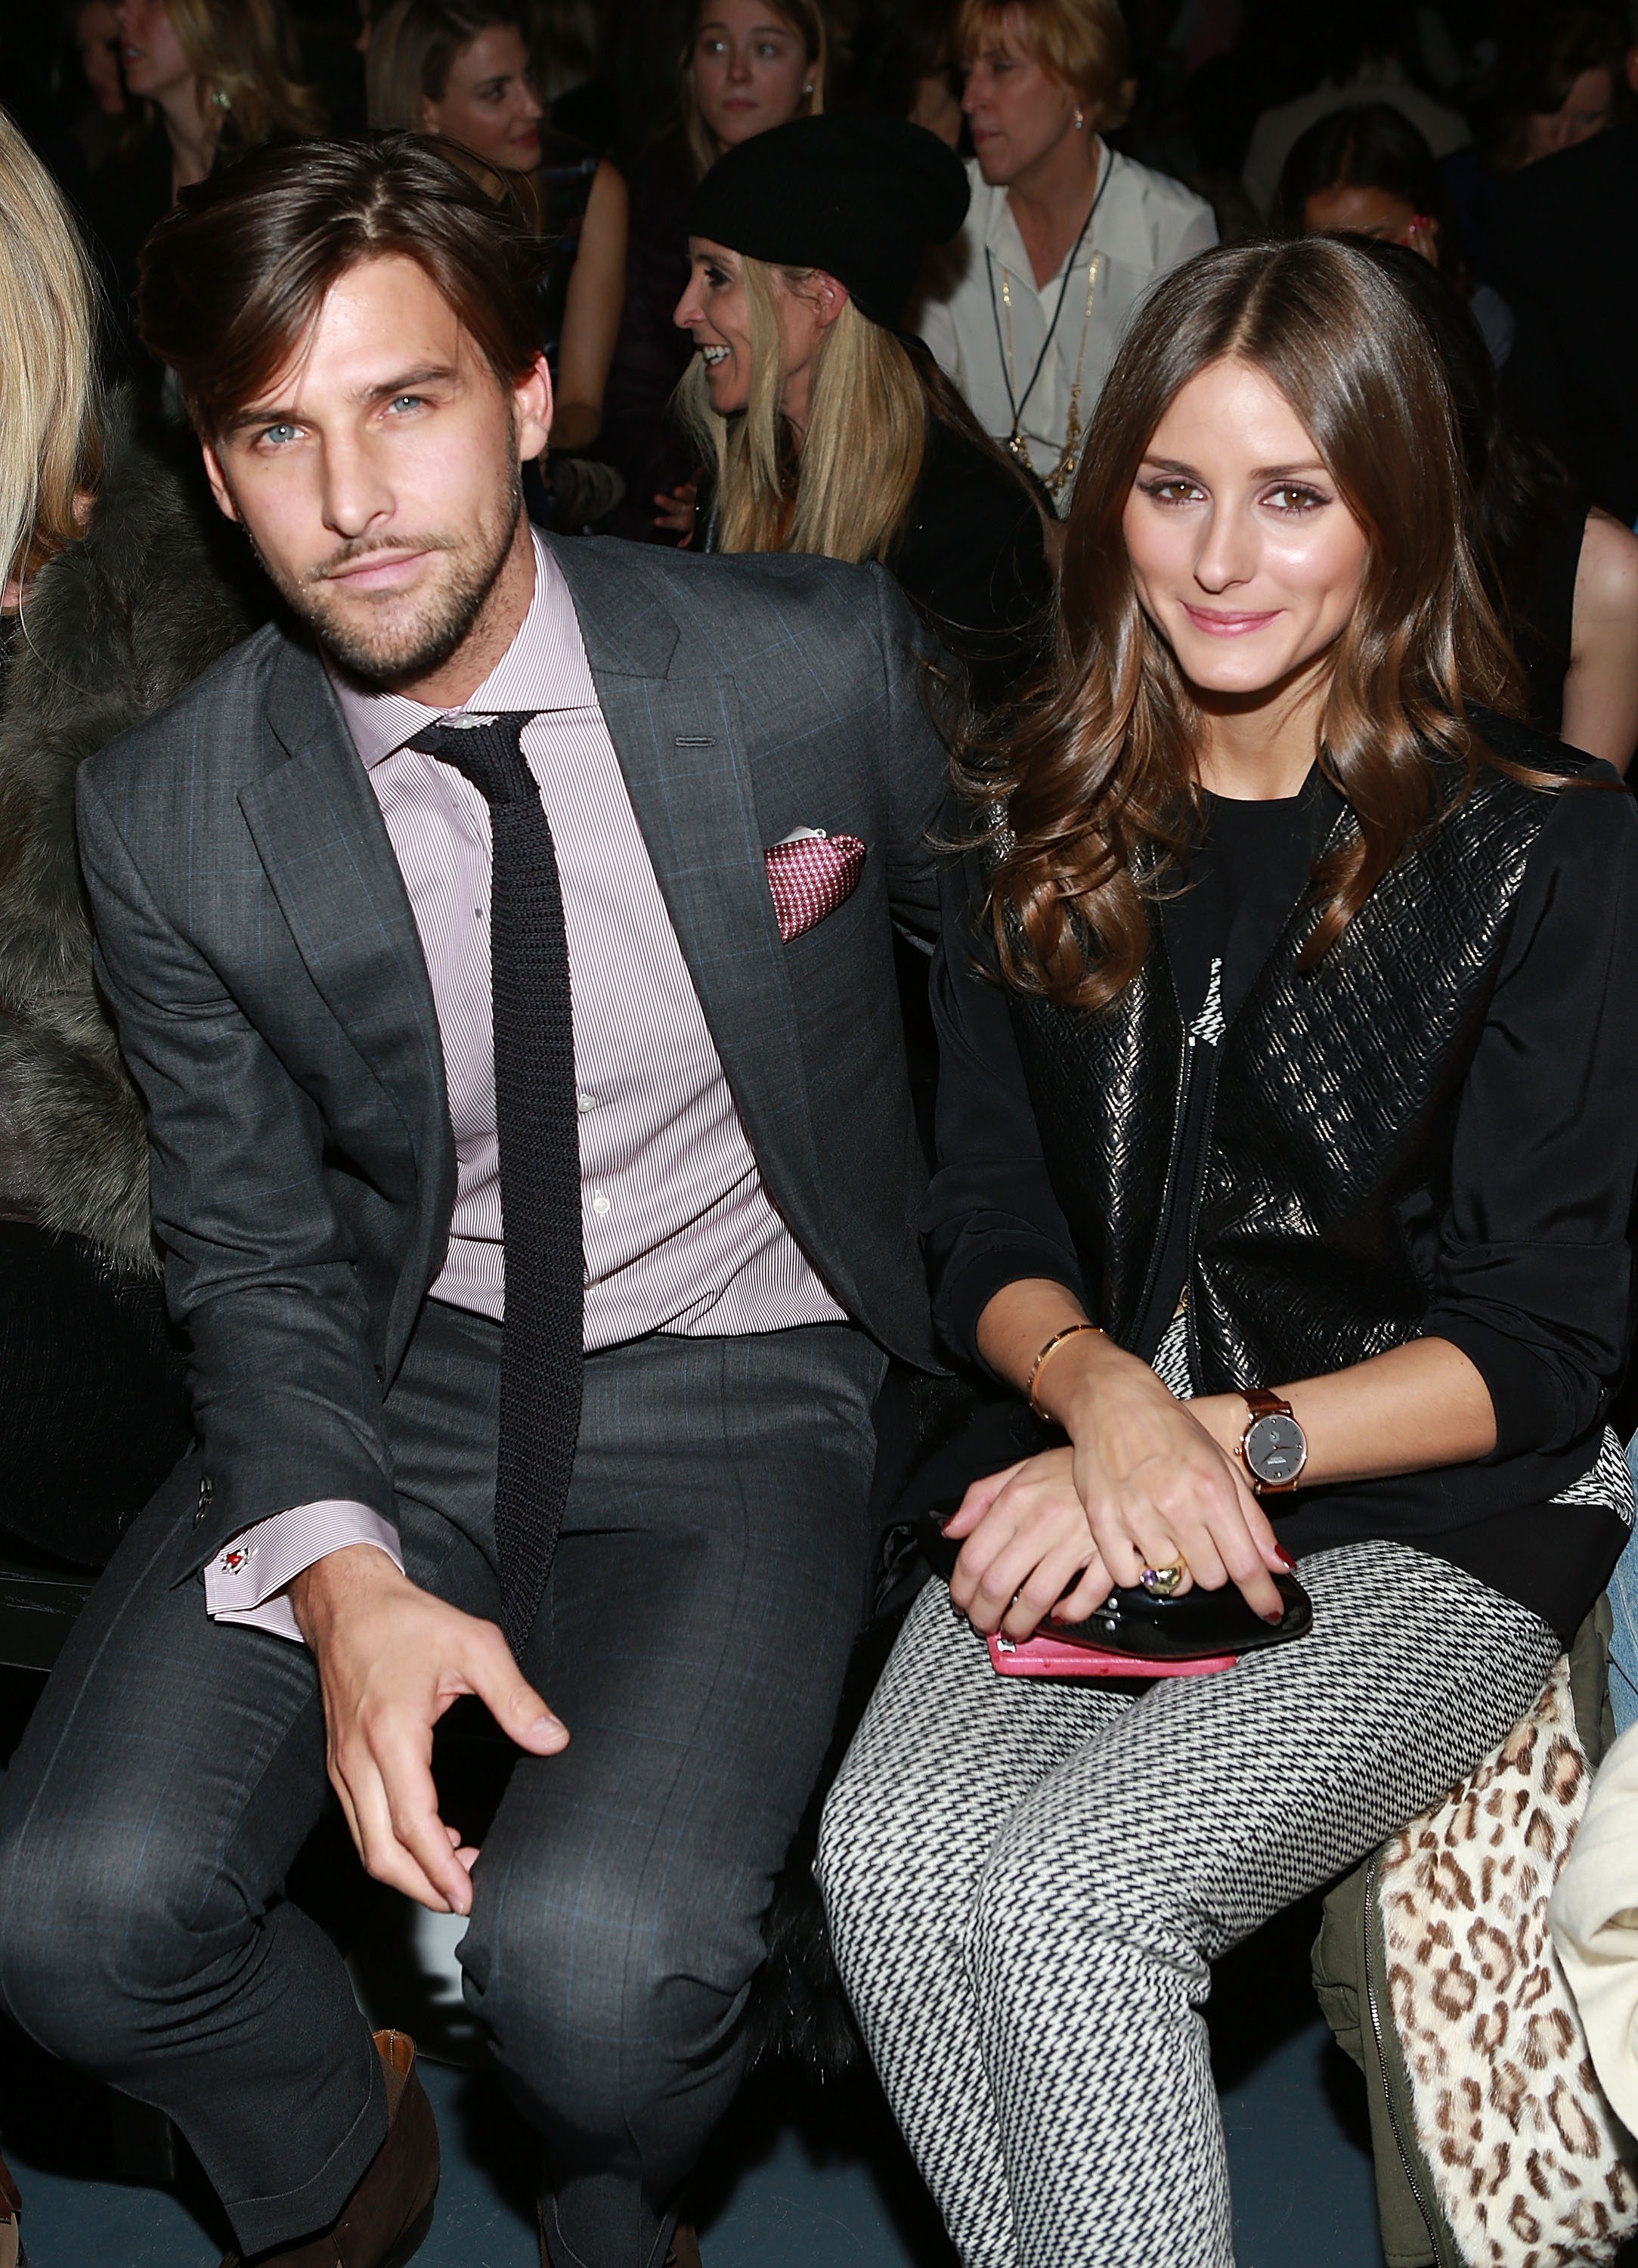 Olivia Palermo and her boyfriend, Johannes Huebl, sat front row for Tibi on Saturday.